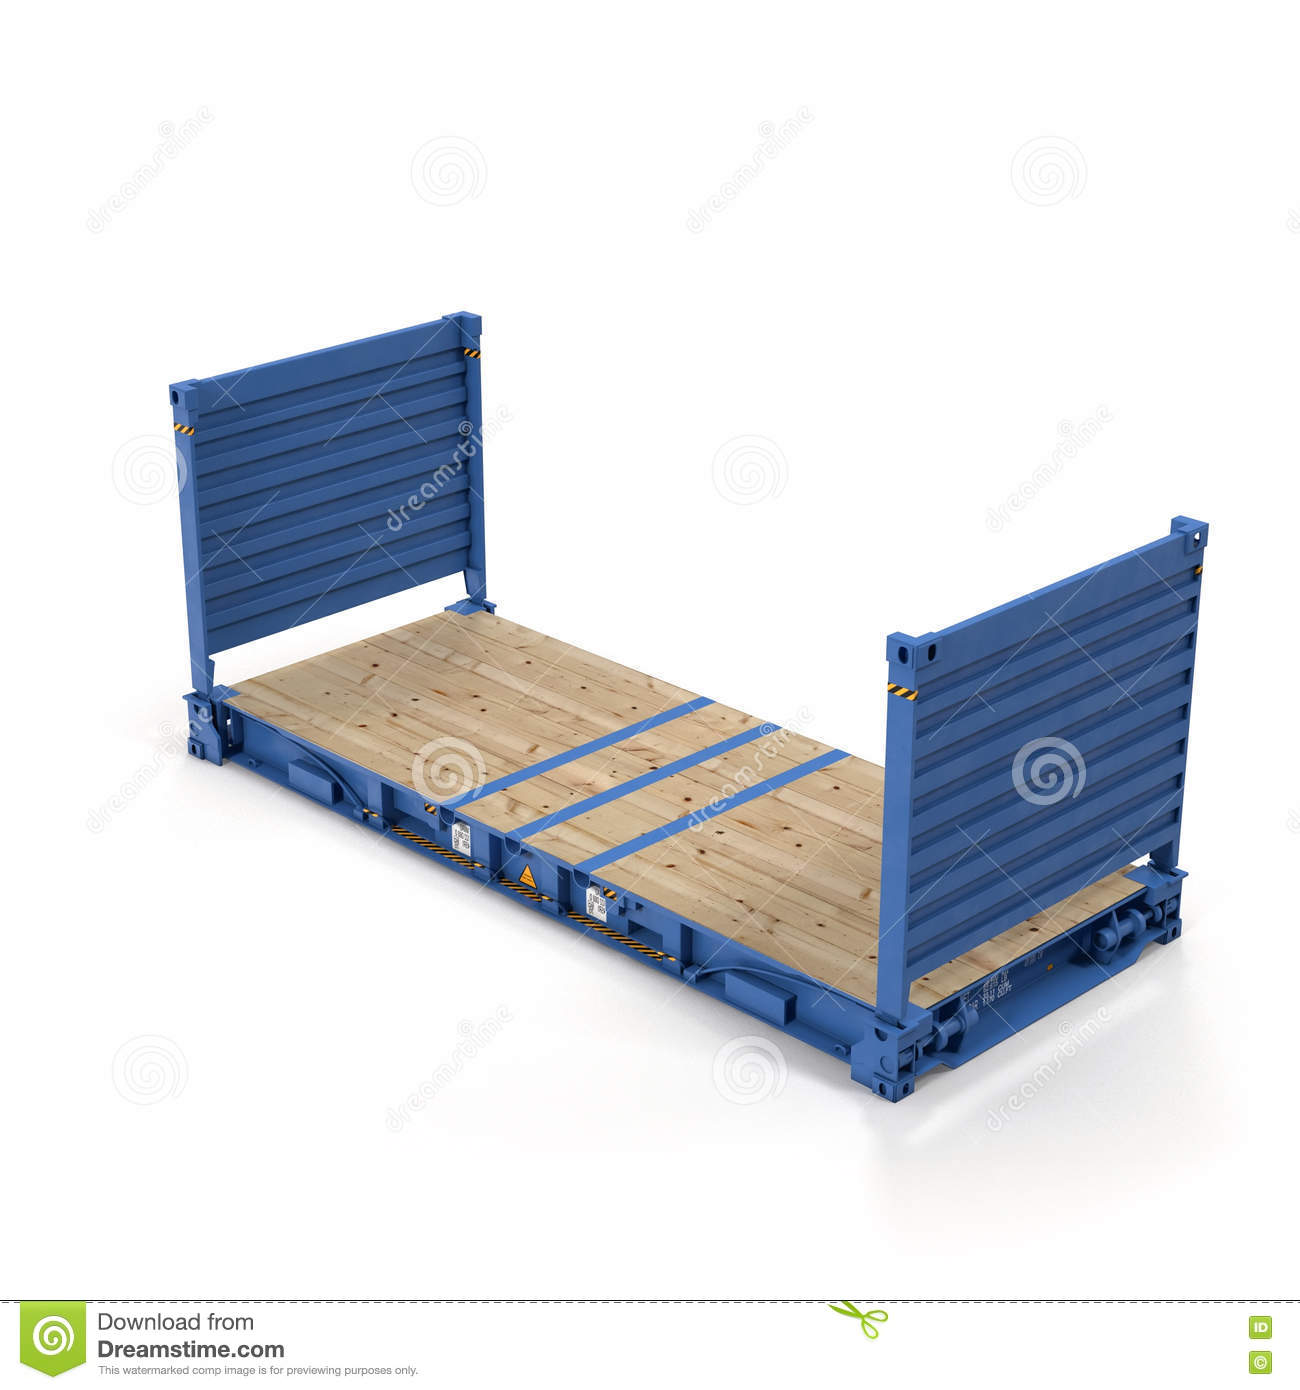 flat rack container isolated on white 3d illustration stock illustration illustration of. Black Bedroom Furniture Sets. Home Design Ideas